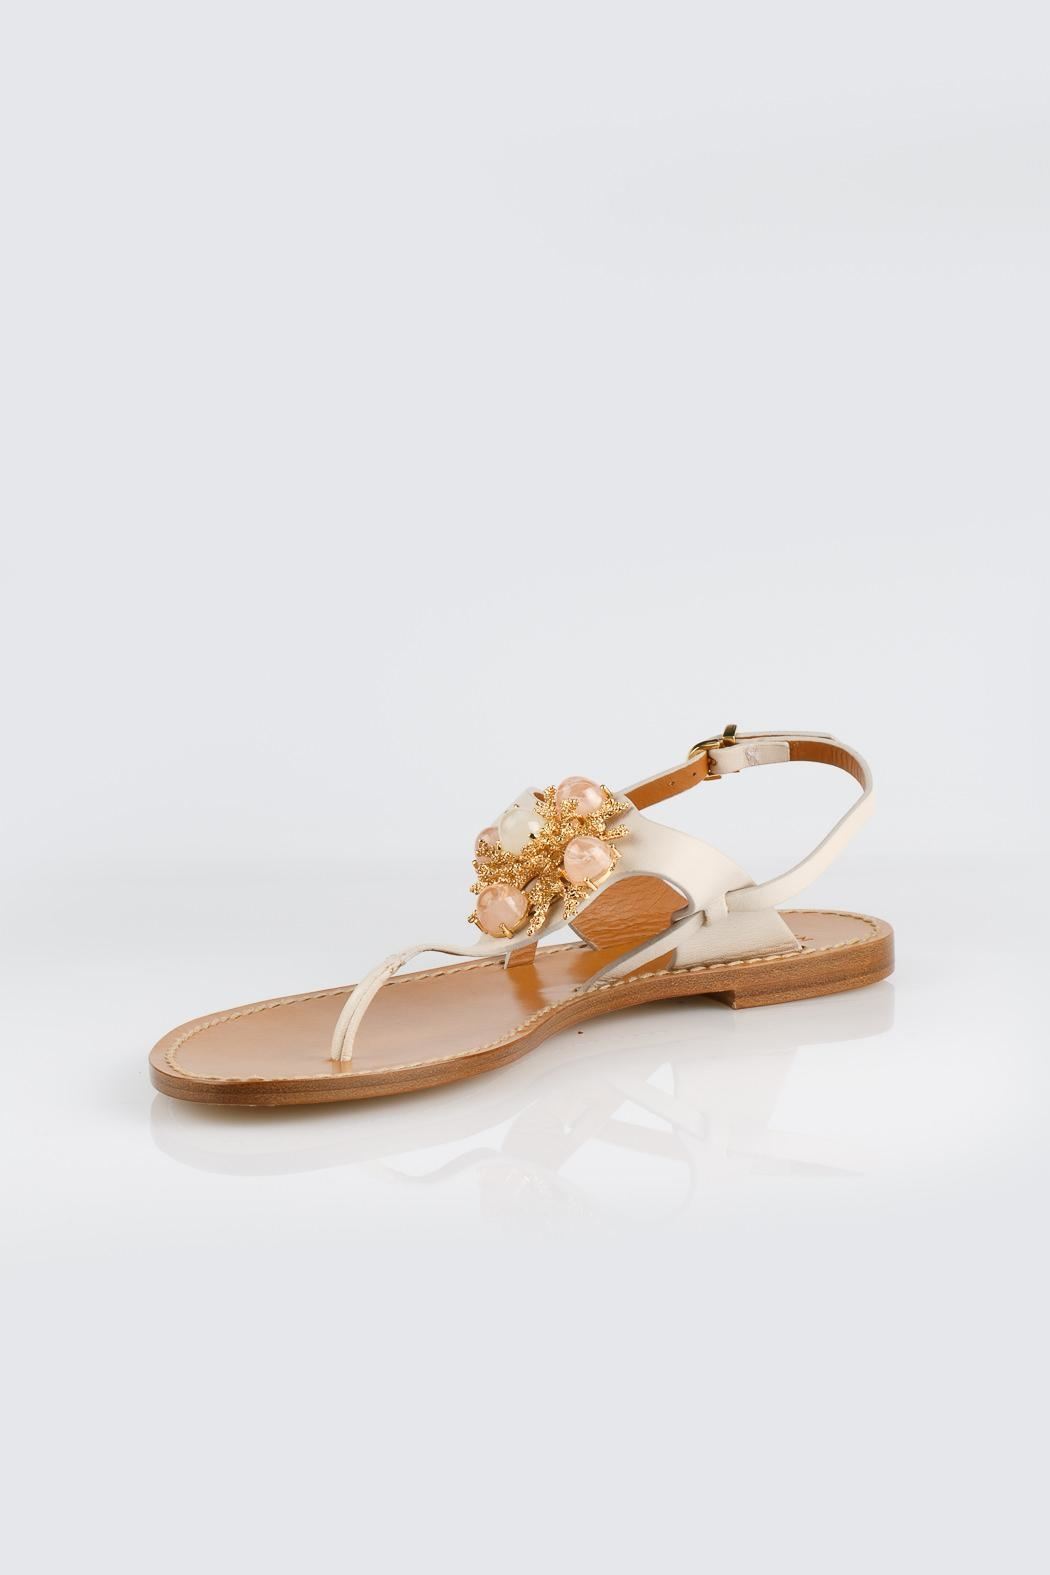 91f9ba914b37 Aerin Cream Sandals from Sydney by White Paire — Shoptiques